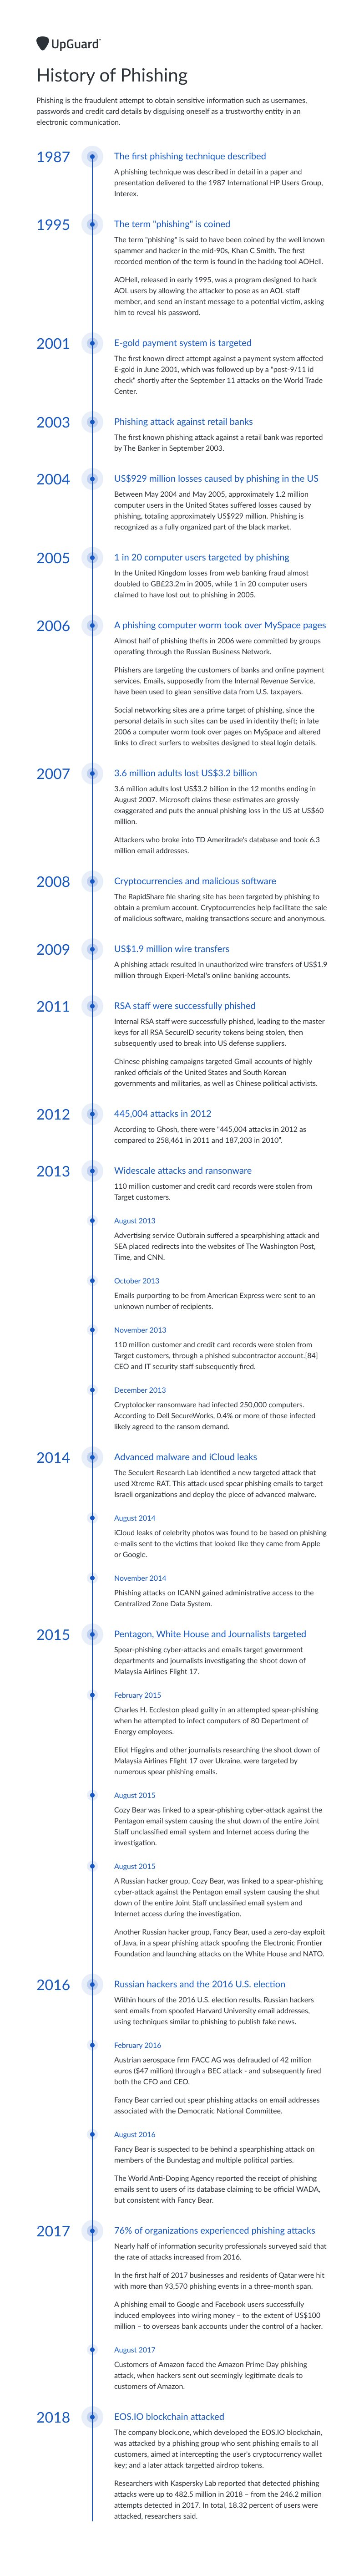 History of Phishing infographic